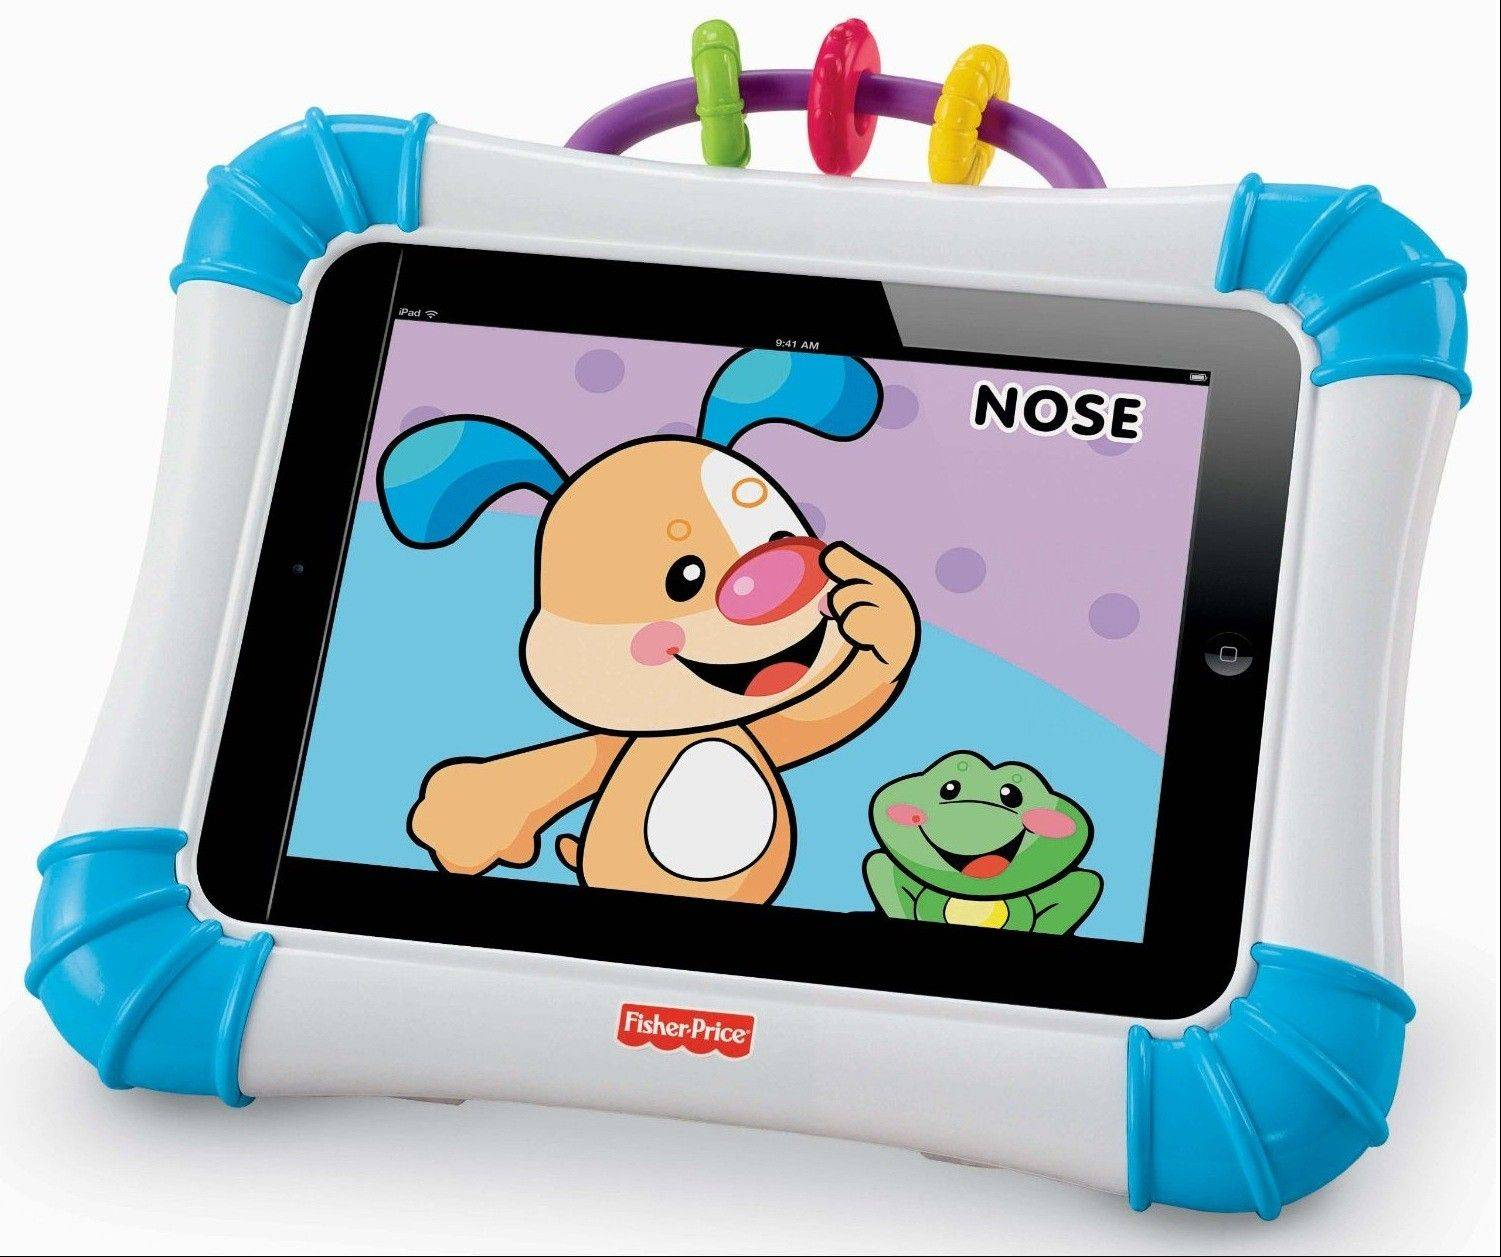 Fisher Price Laugh and Learn Apptivity Case for iPad allows your infant to play with your iPad without destroying it or making accidental calls.